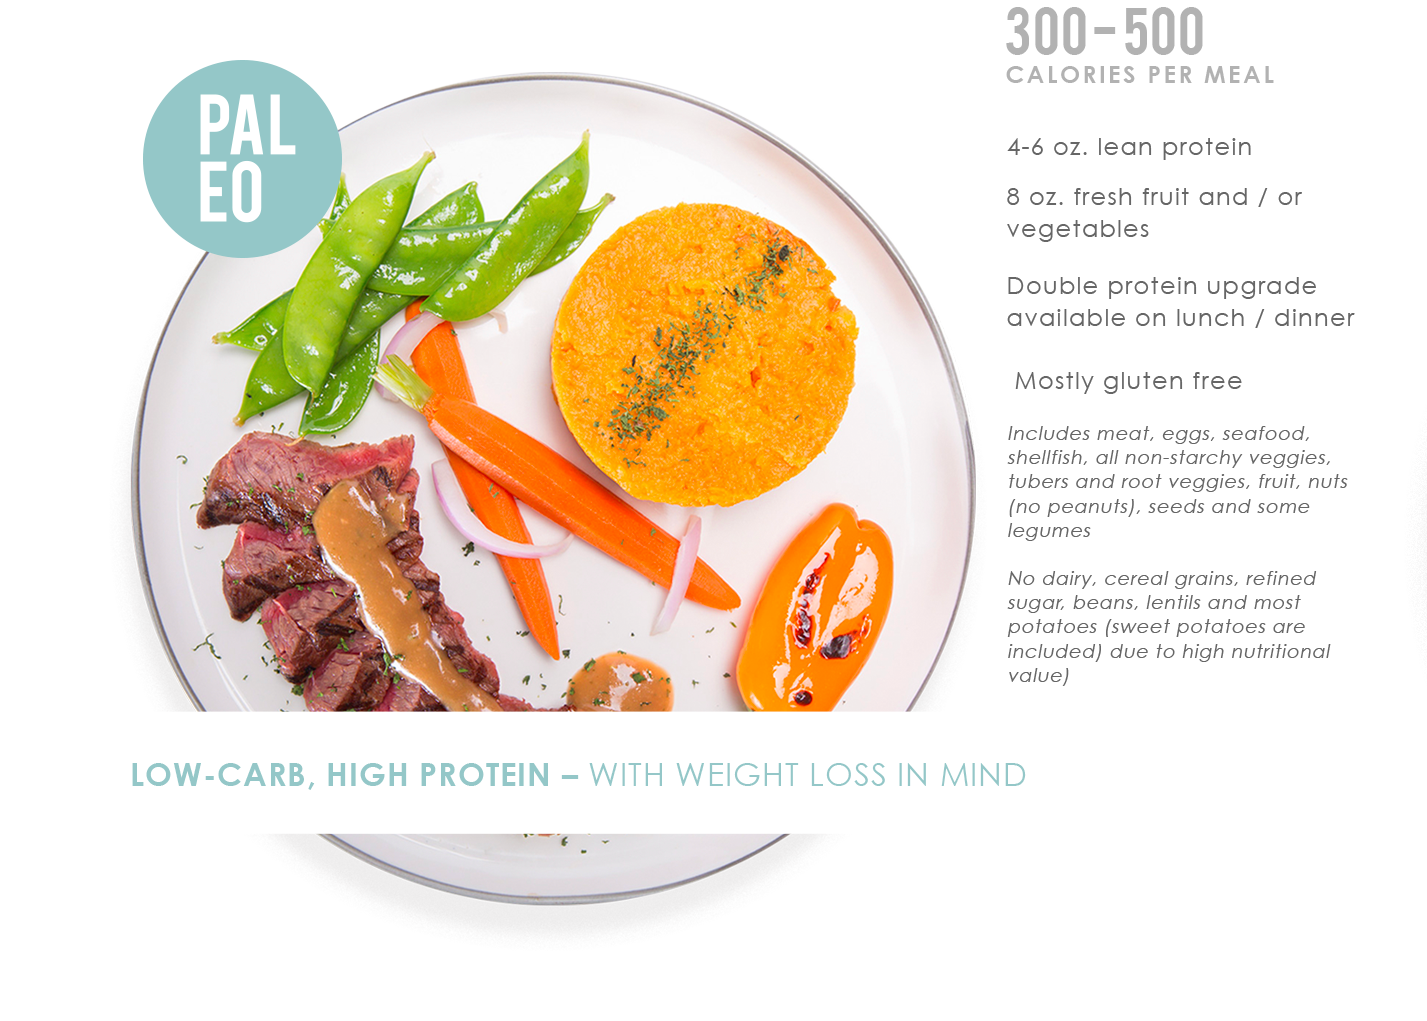 West Palm Beach paleo food delivery